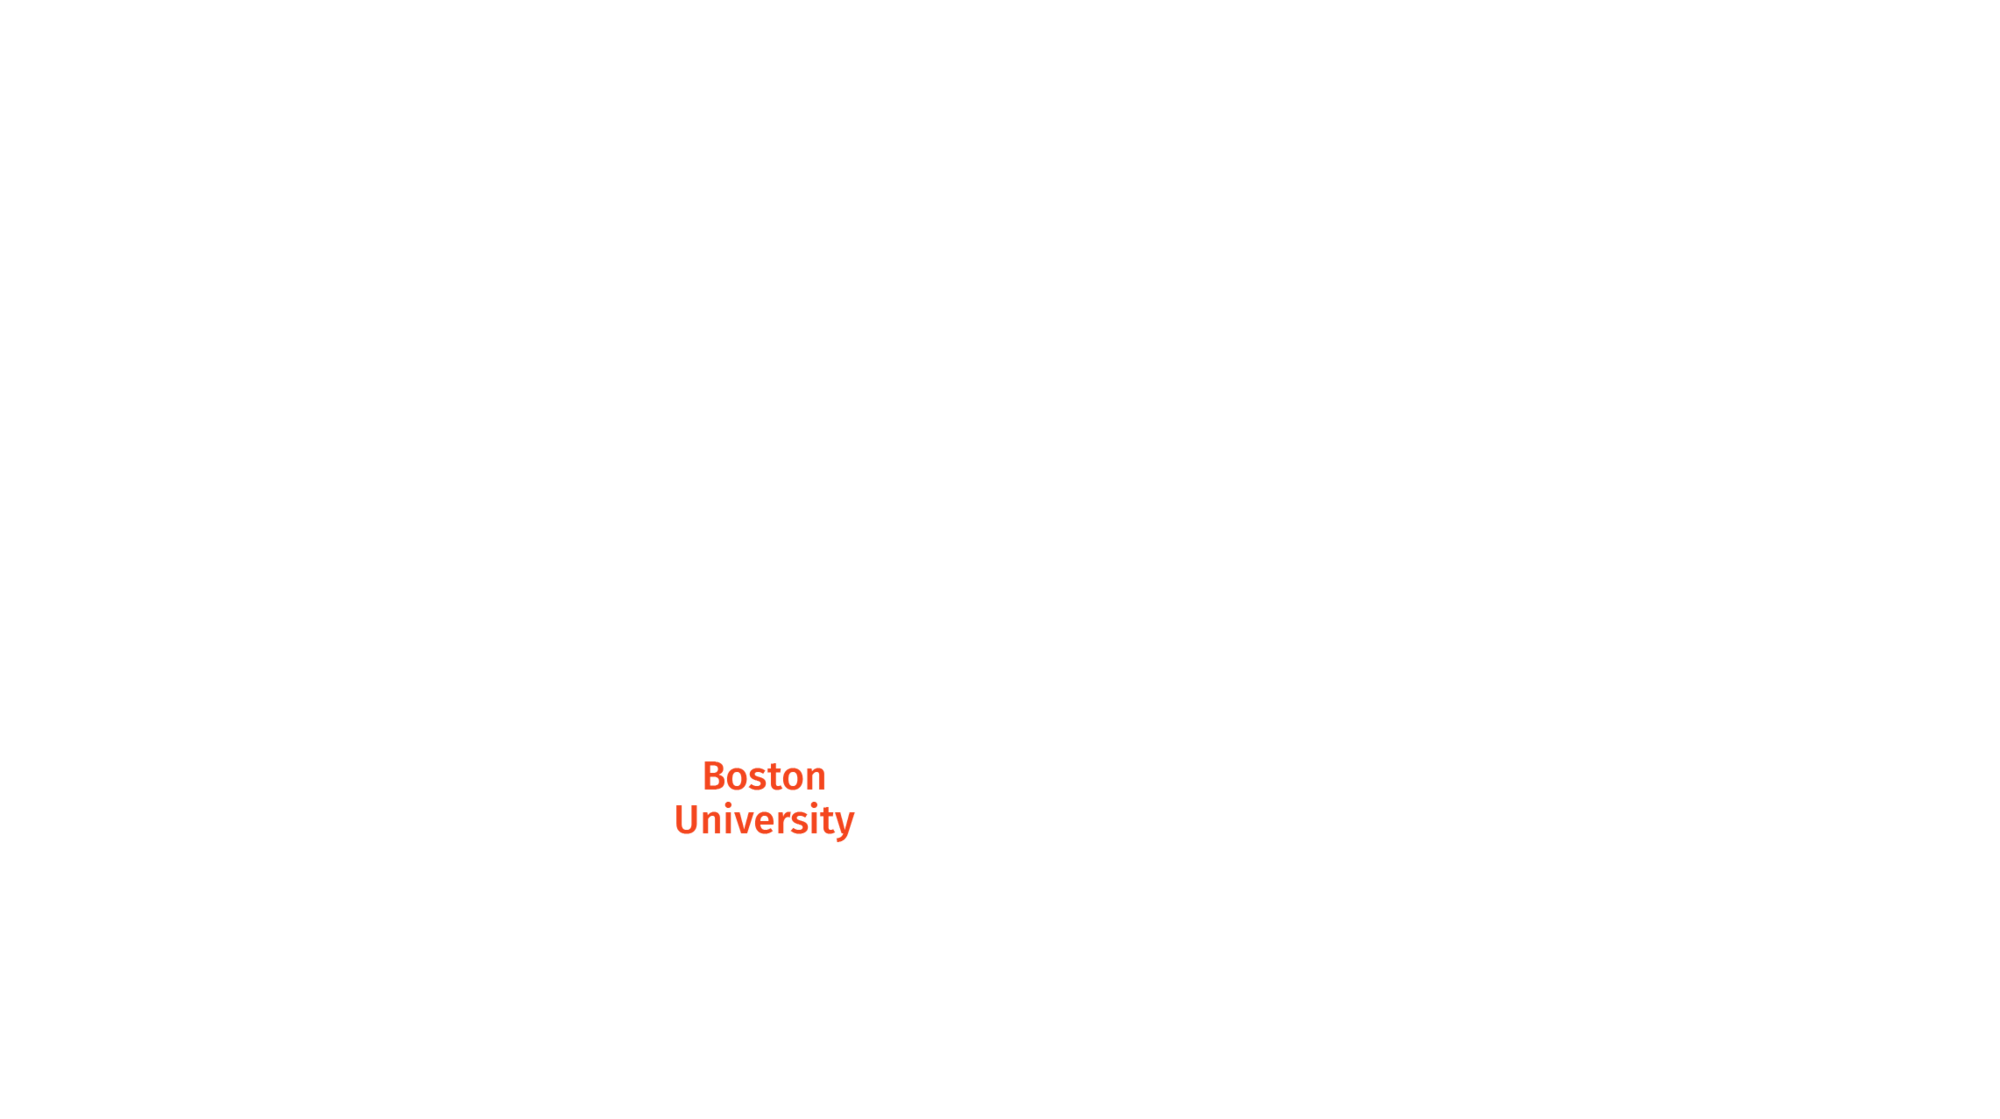 Boston University (texte)